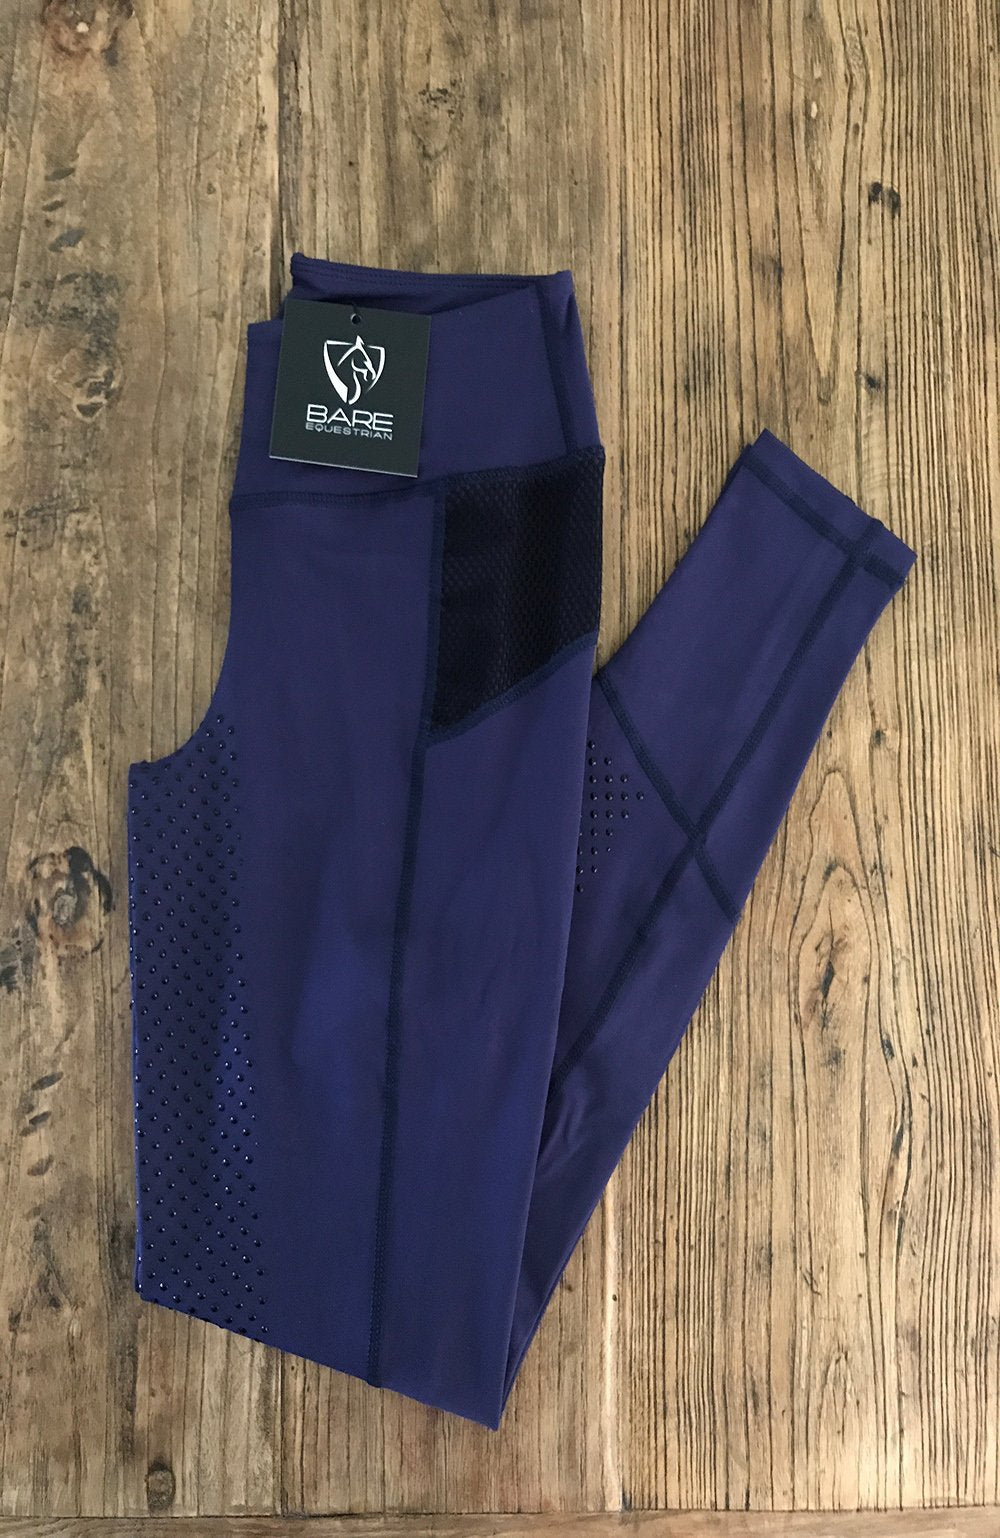 Bare Equestrian Youth Performance Tights - Oxford Navy